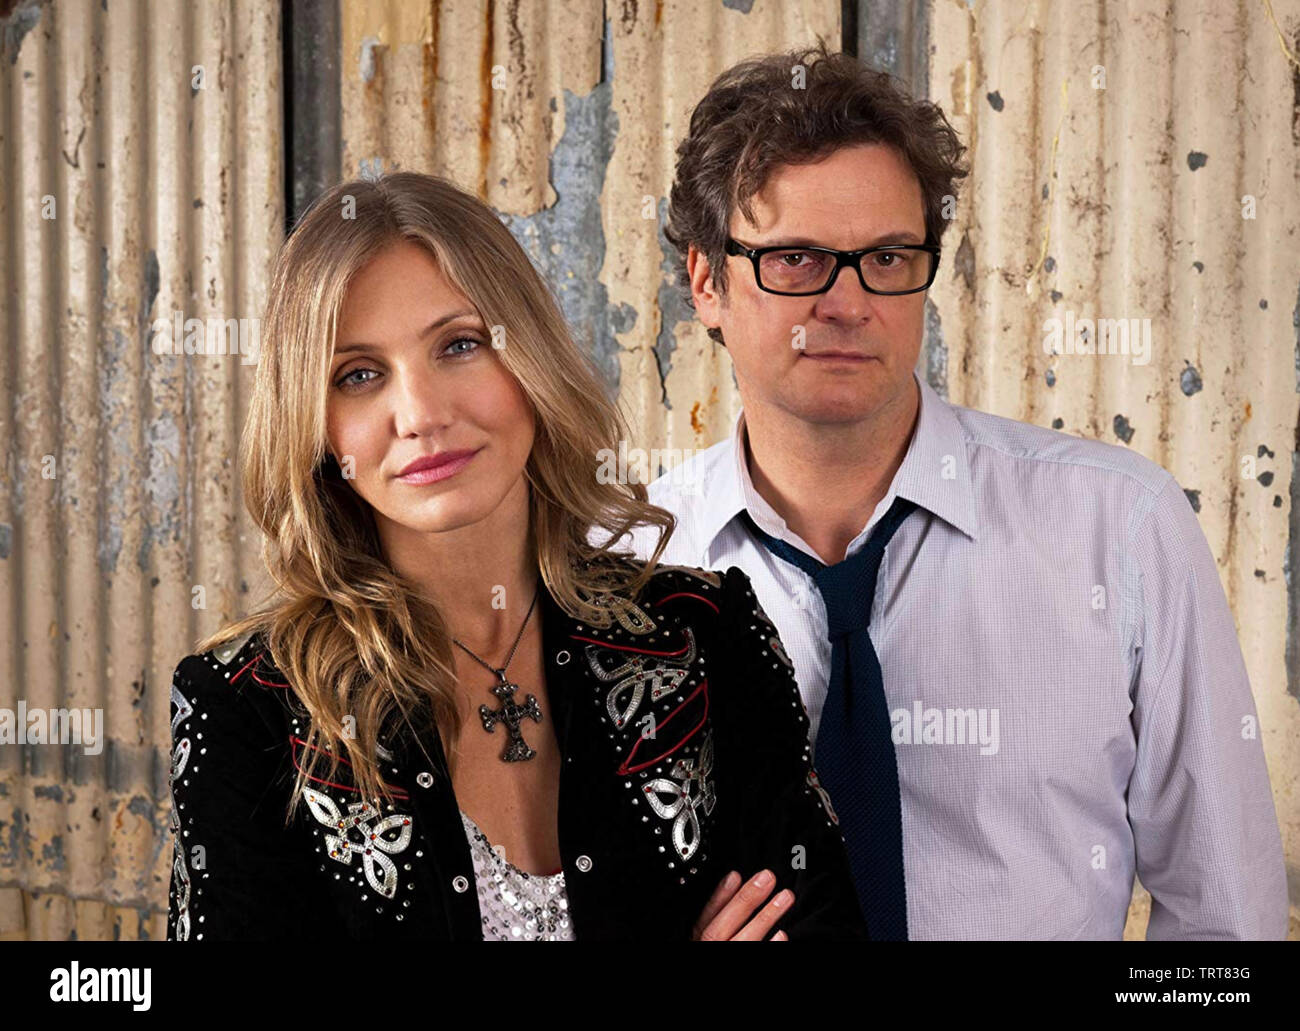 GAMBIT 2012 Momentum Pictures film with Cameron Diaz and Colin Firth - Stock Image